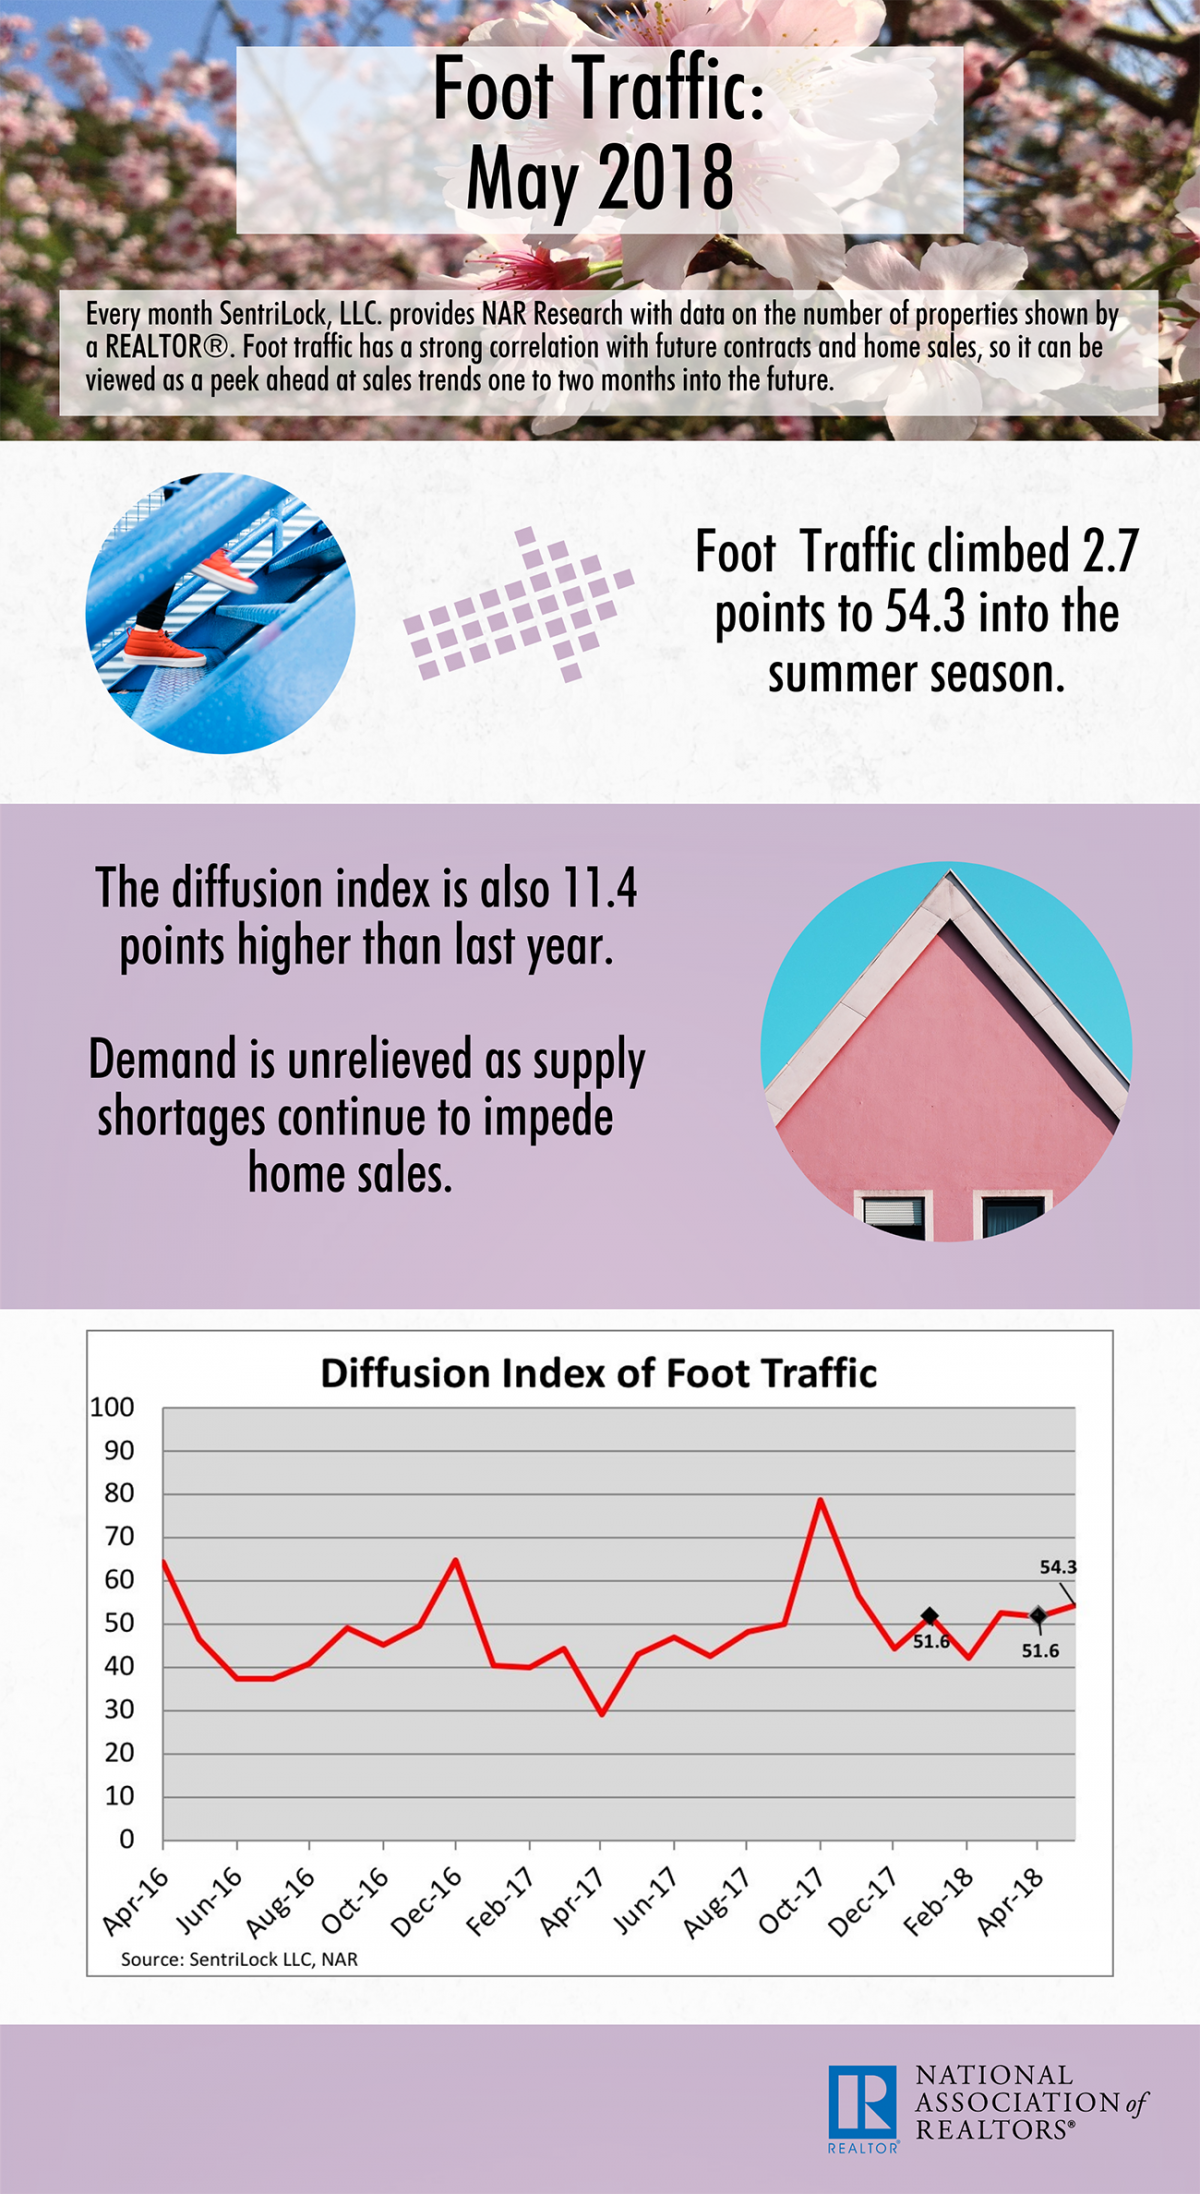 2018 05 foot traffic infographic 09 25 2018 1300 2377